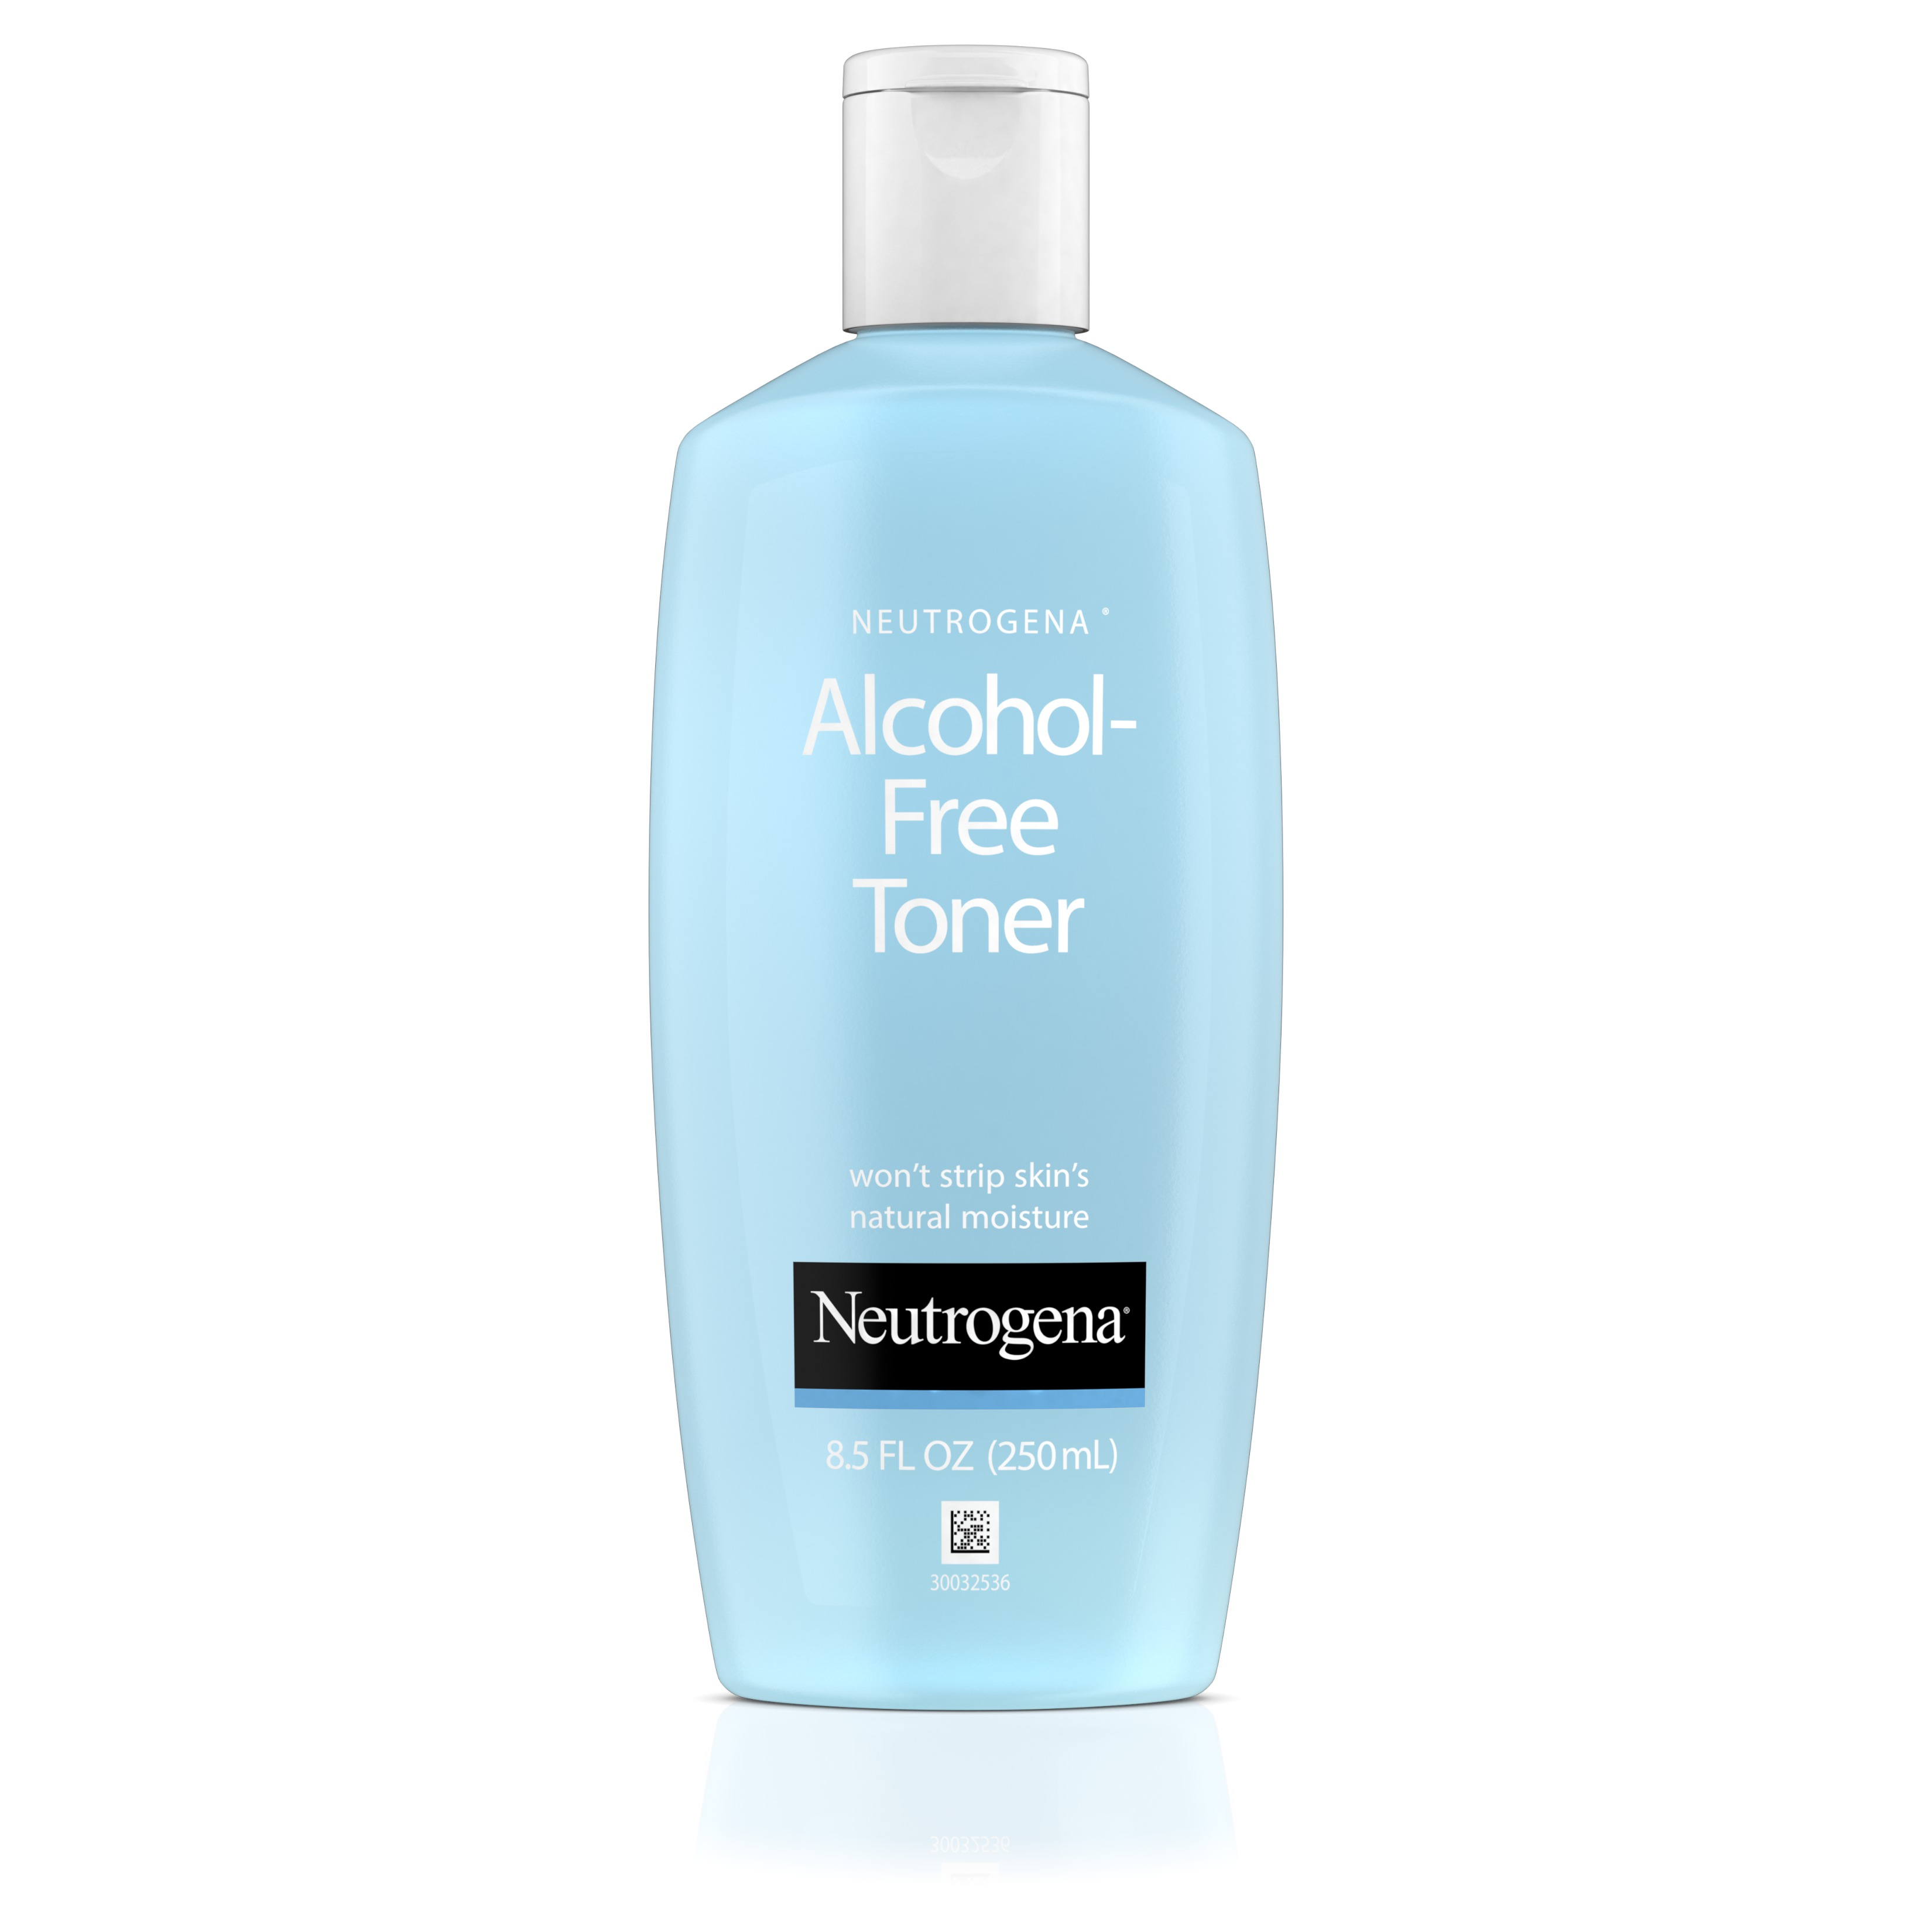 Neutrogena Alcohol And Oil-Free Toner, 8.5 Oz. - Walmart.com